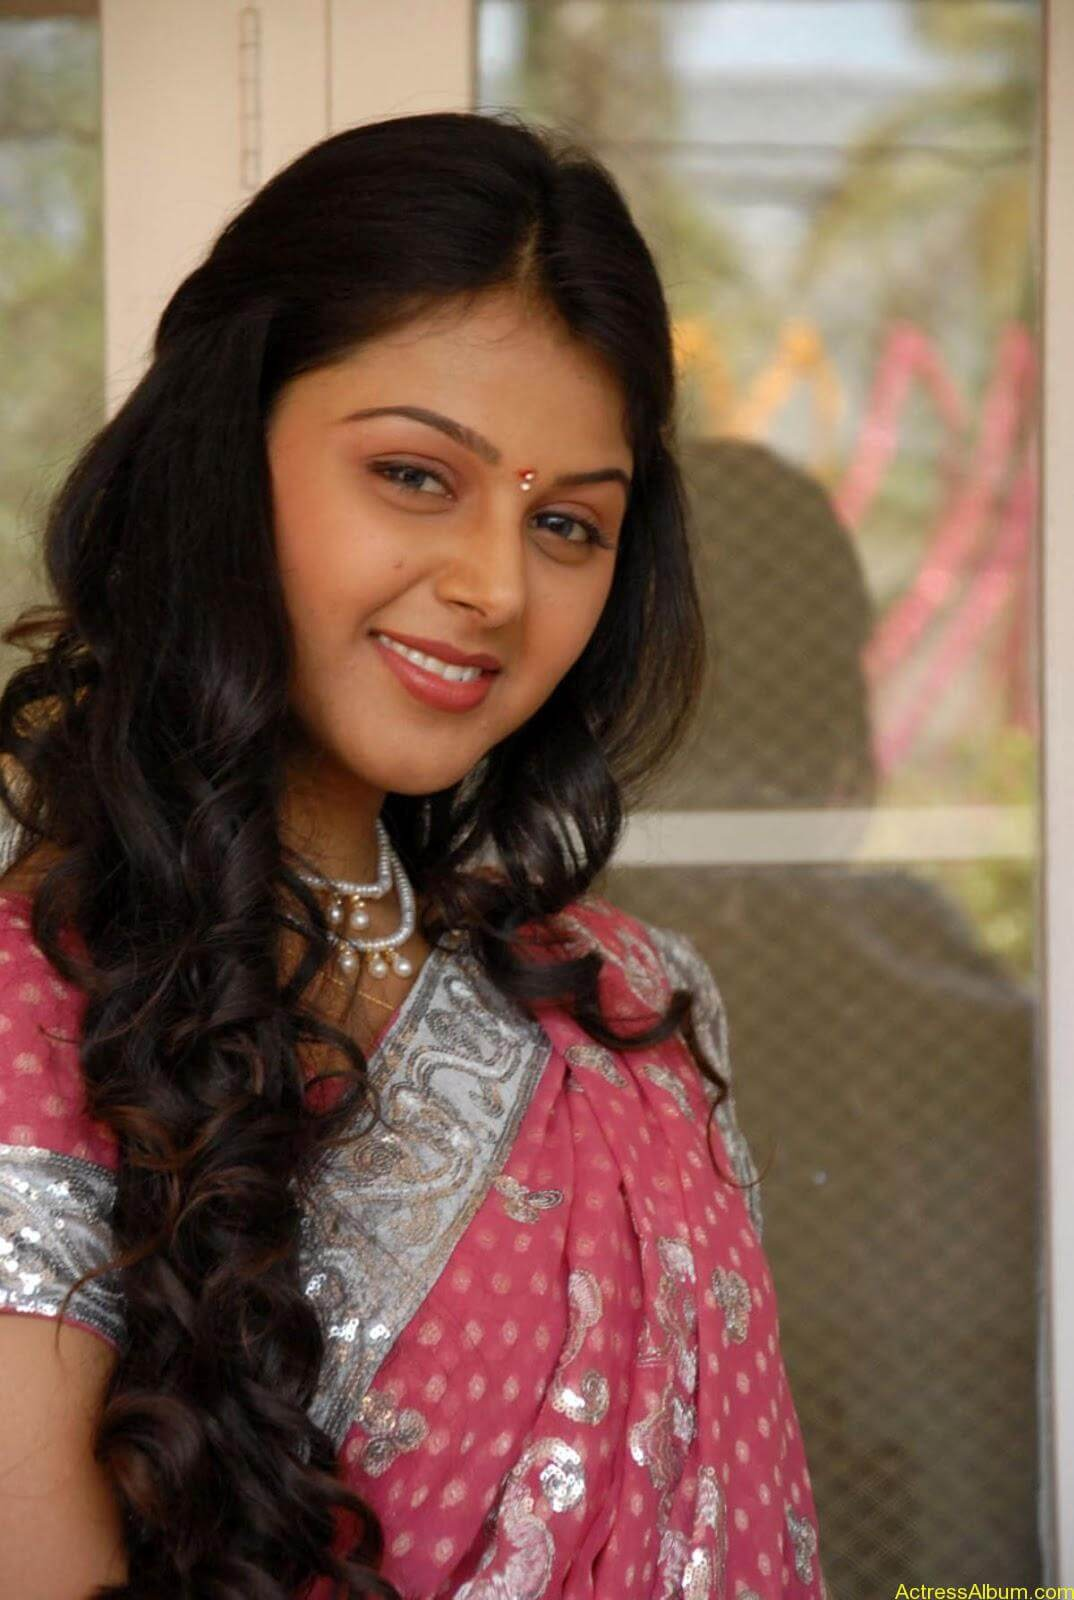 Monal gajjar Hot Saree Stills (12)